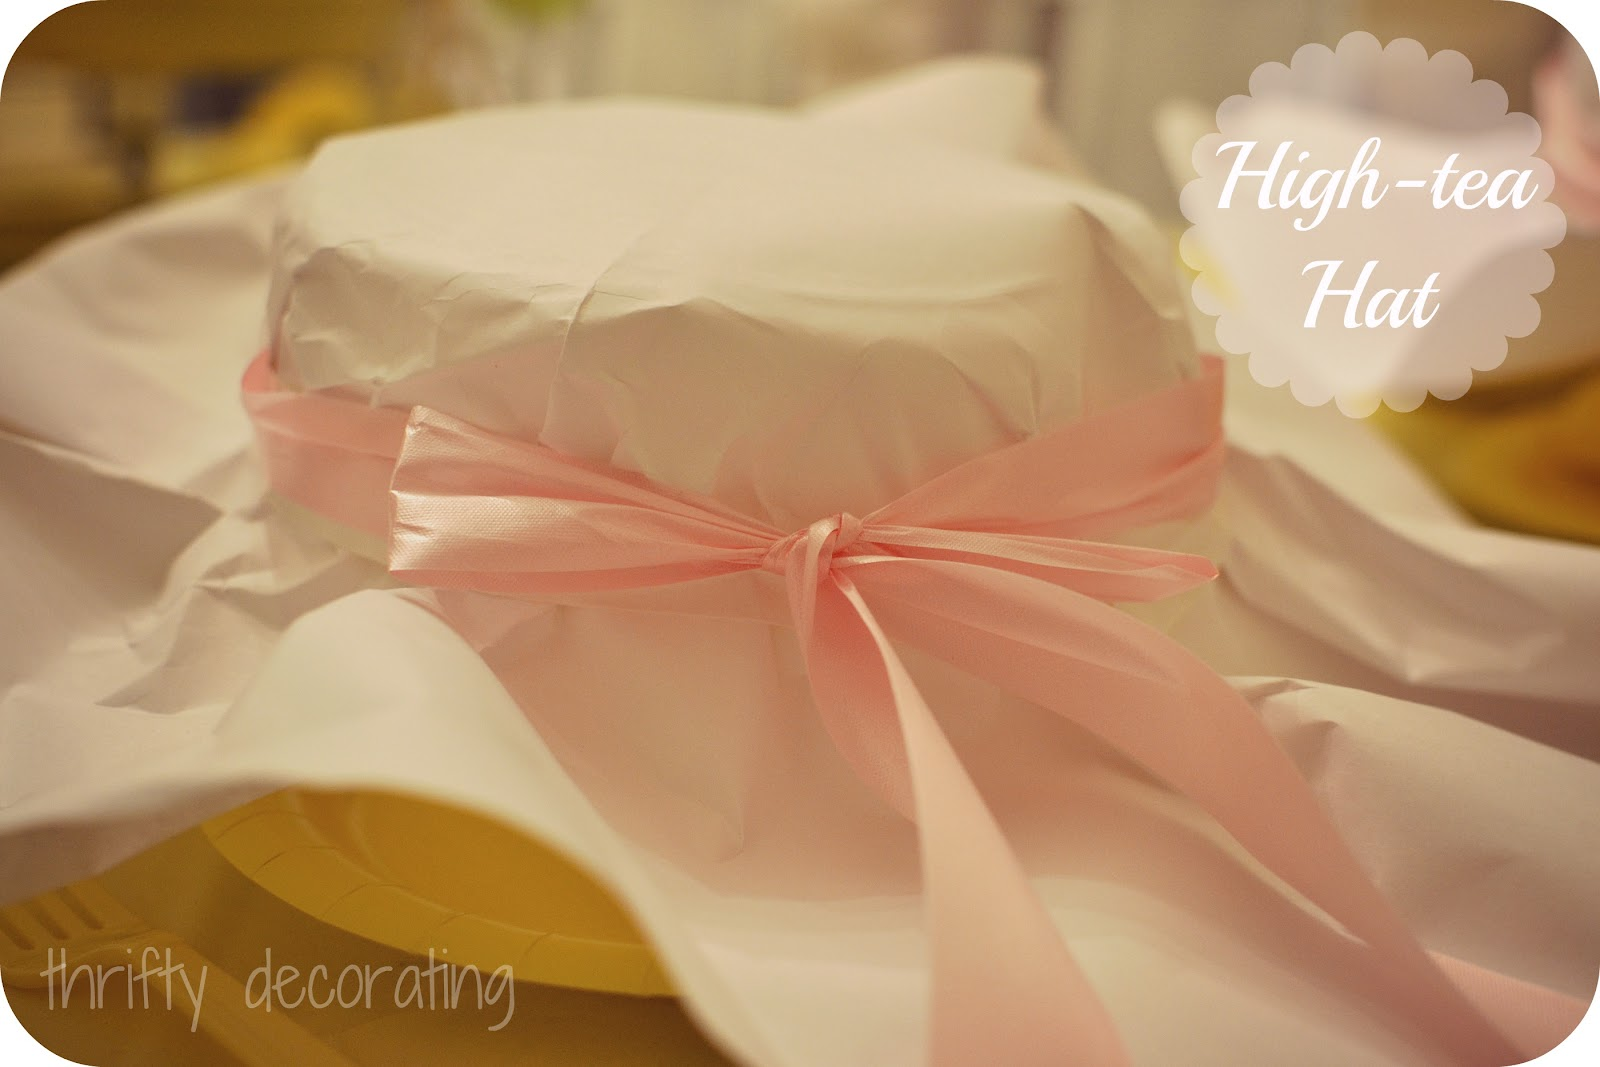 Thrifty decorating tea party hats and party pics for How to decorate a hat for a tea party